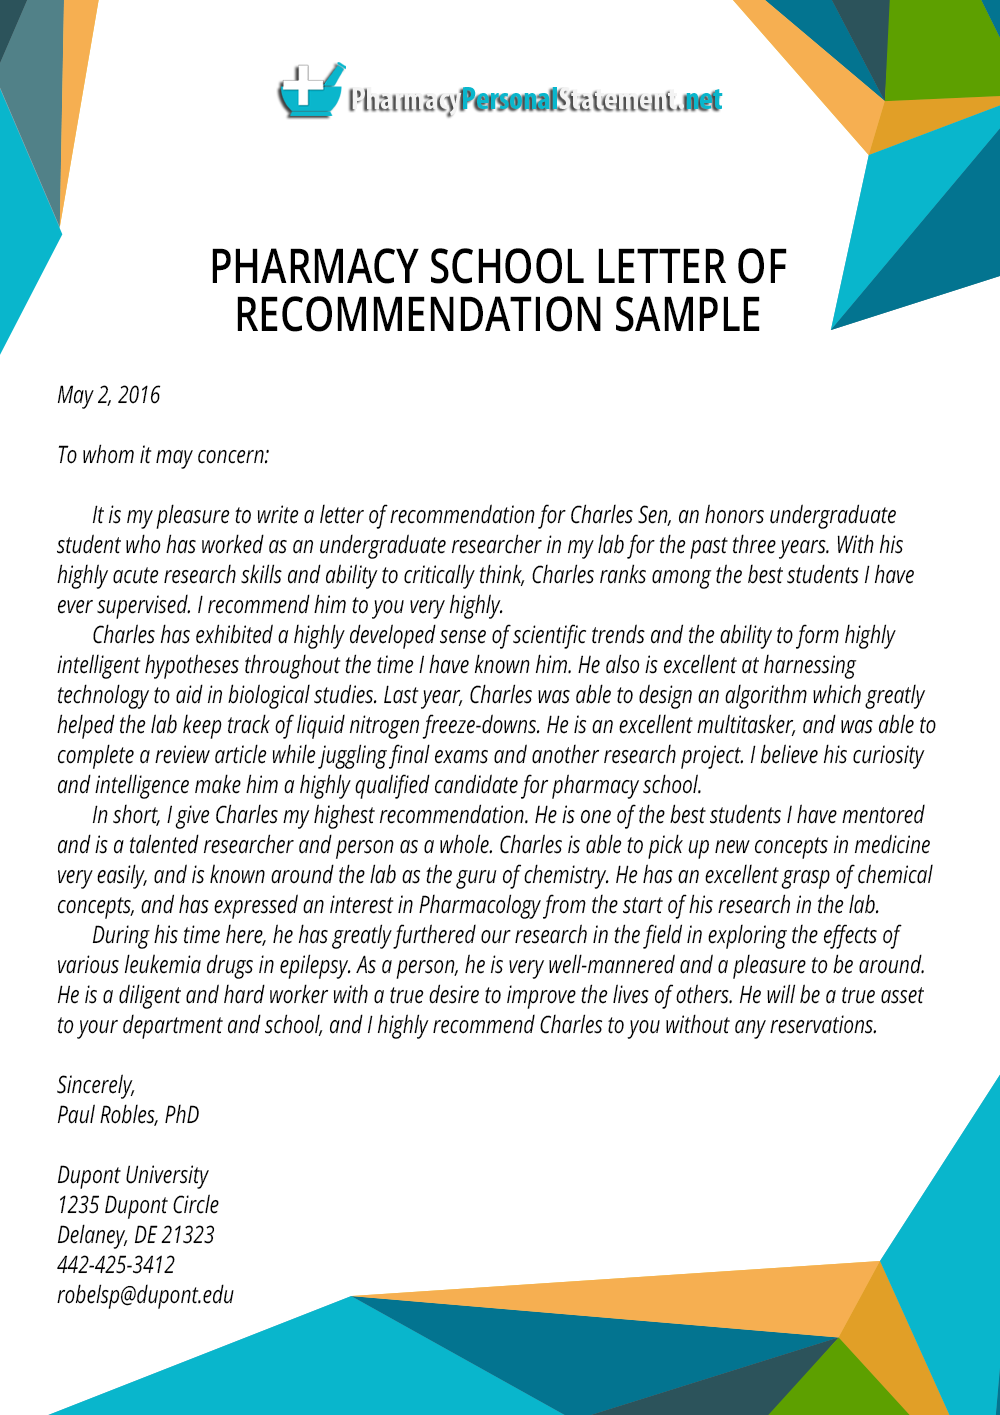 Pin by pharmacy application samples on pharmacy school letter of pin by pharmacy application samples on pharmacy school letter of recommendation pinterest pharmacy school writing services and school fandeluxe Choice Image